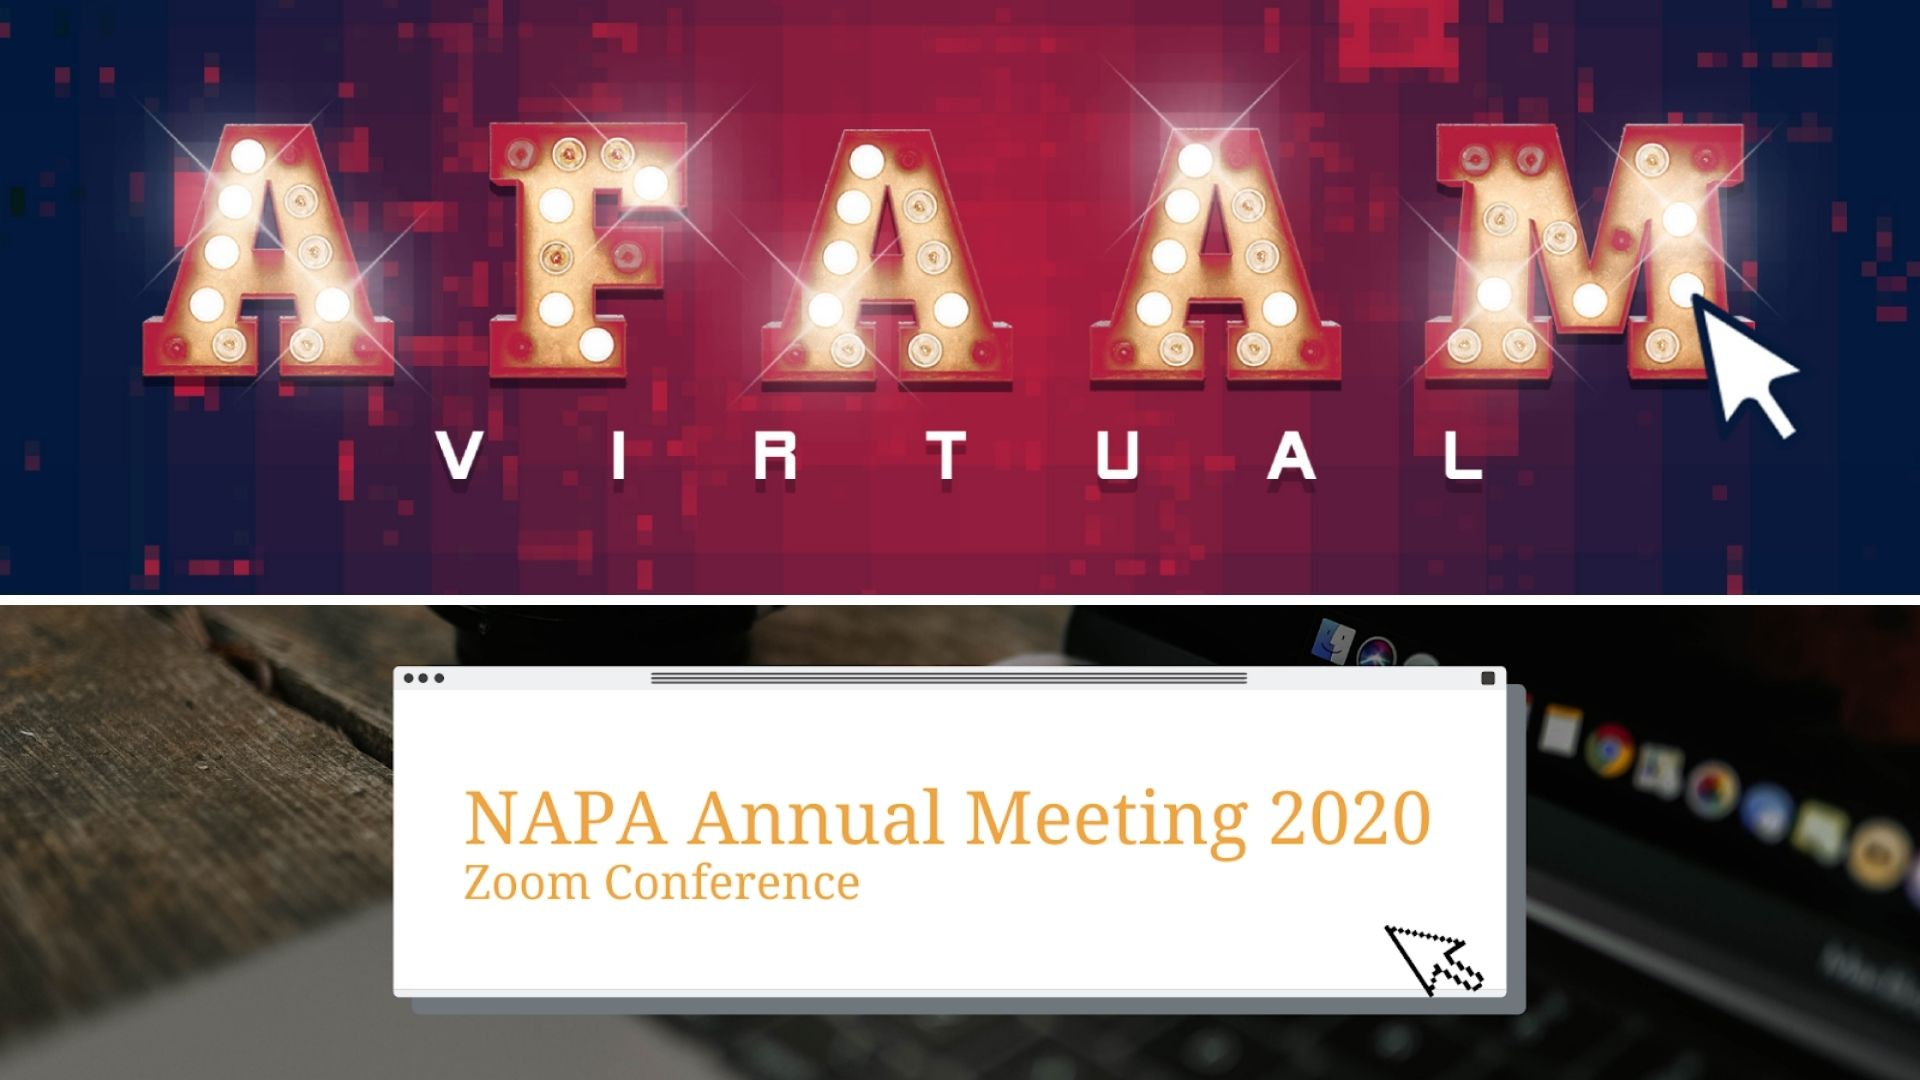 AFA Annual Meeting and NAPA Annual Meeting 2020